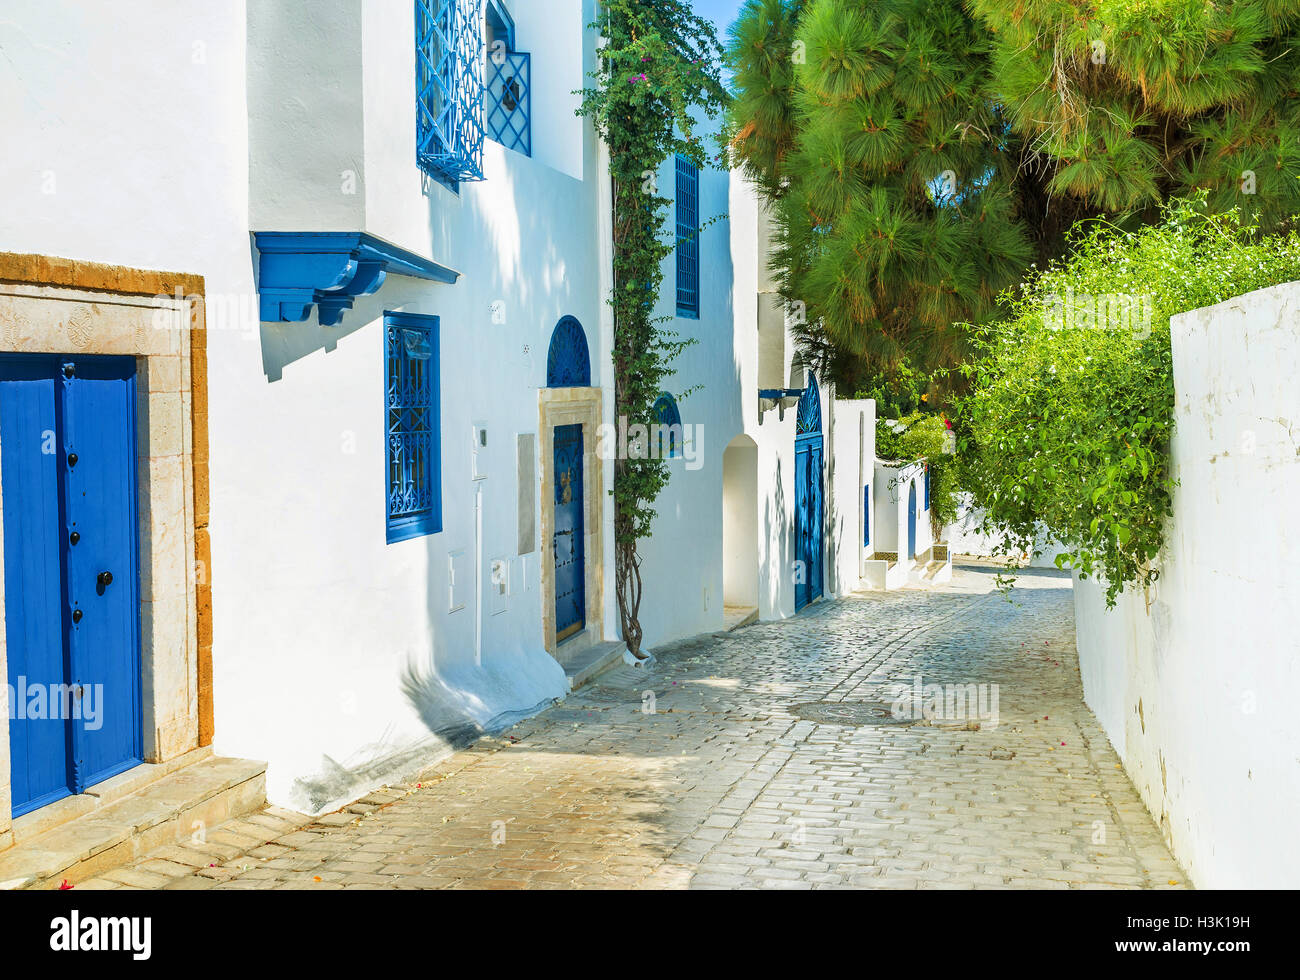 The pleasant walk on the shady street of Sidi Bou Said with posh villas and tourist cottages, Tunisia. - Stock Image